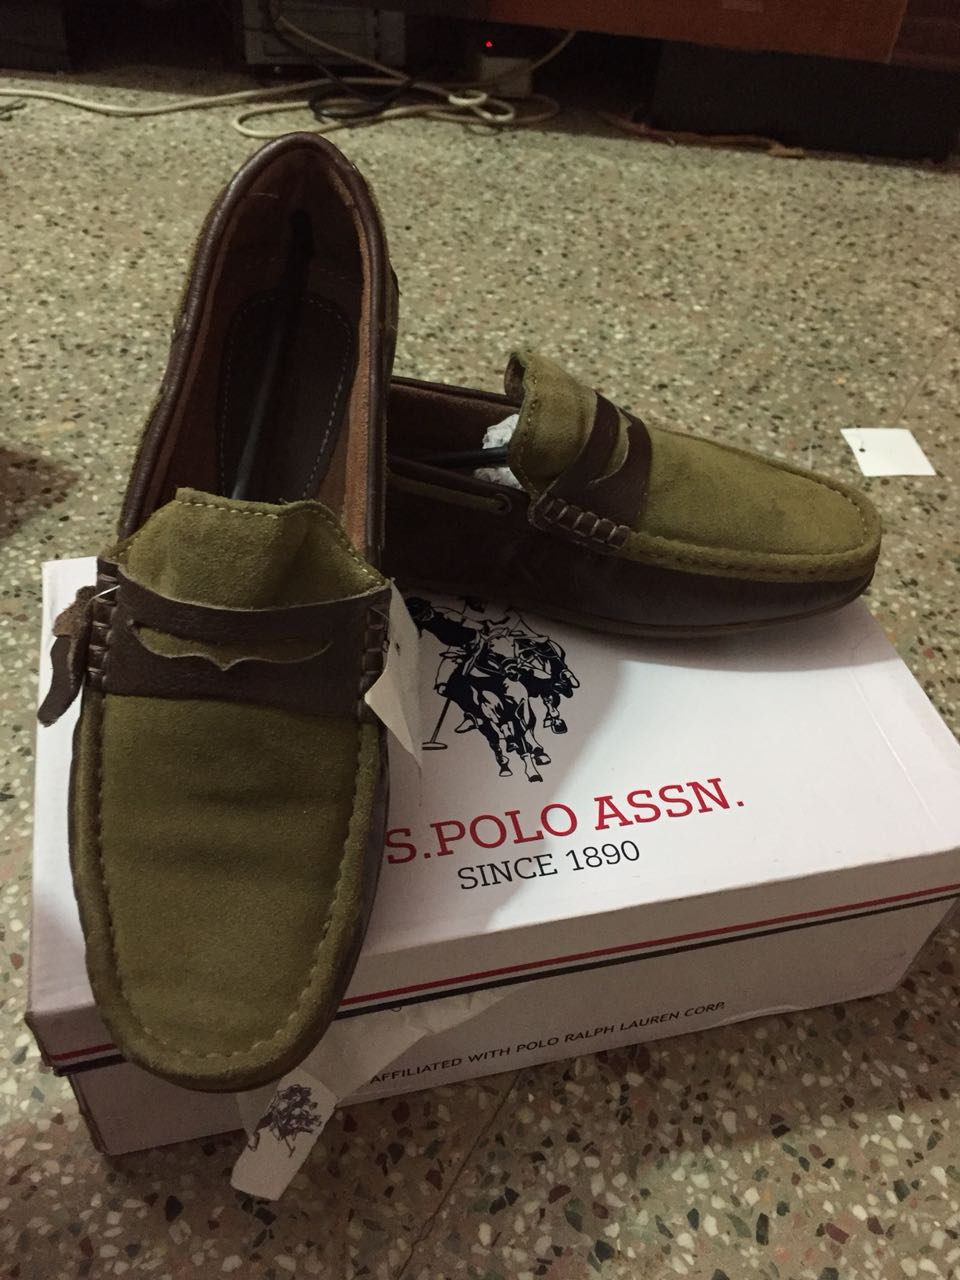 29011 - USPA shoes INDIA